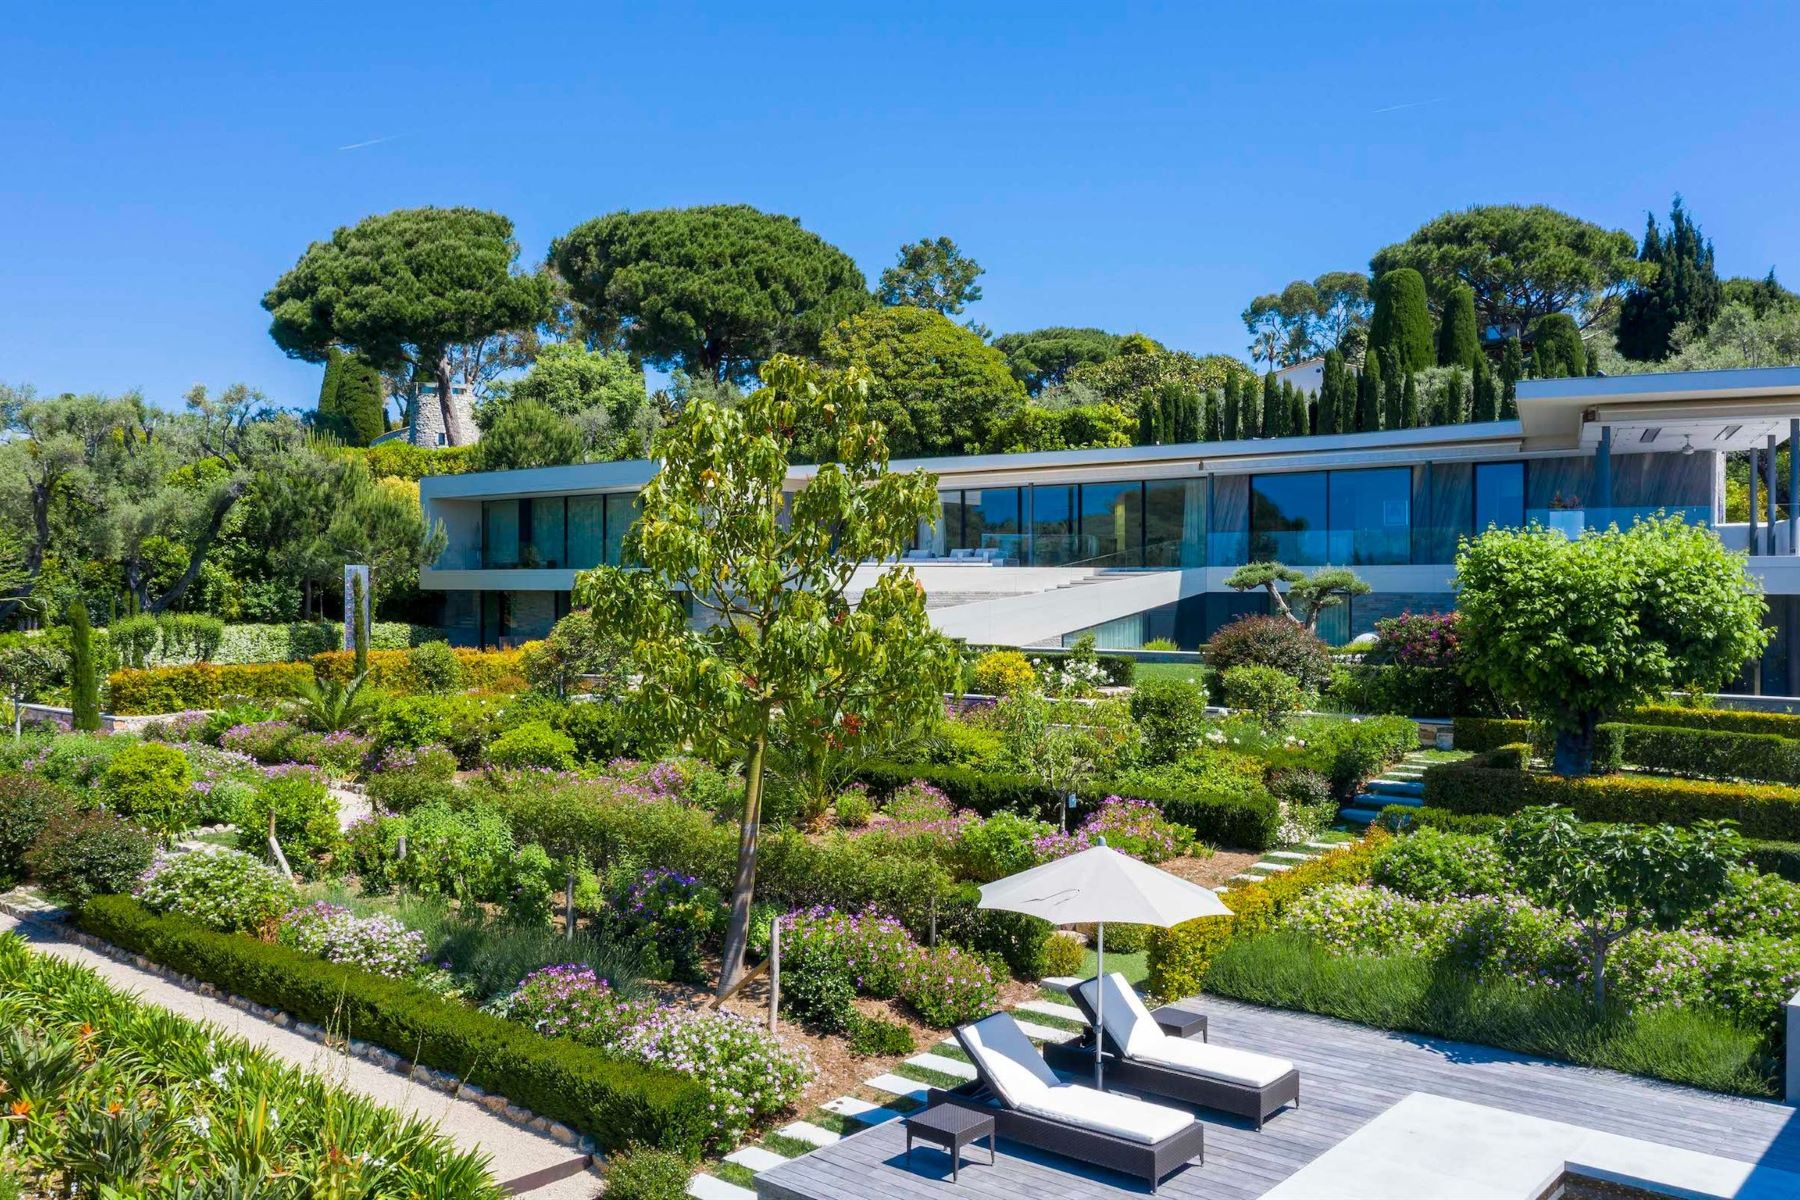 single family homes for Sale at For sale in the heart of the Cap D'Antibes a luxurious contemporary villa Cap D'Antibes, Provence-Alpes-Cote D'Azur 06160 France